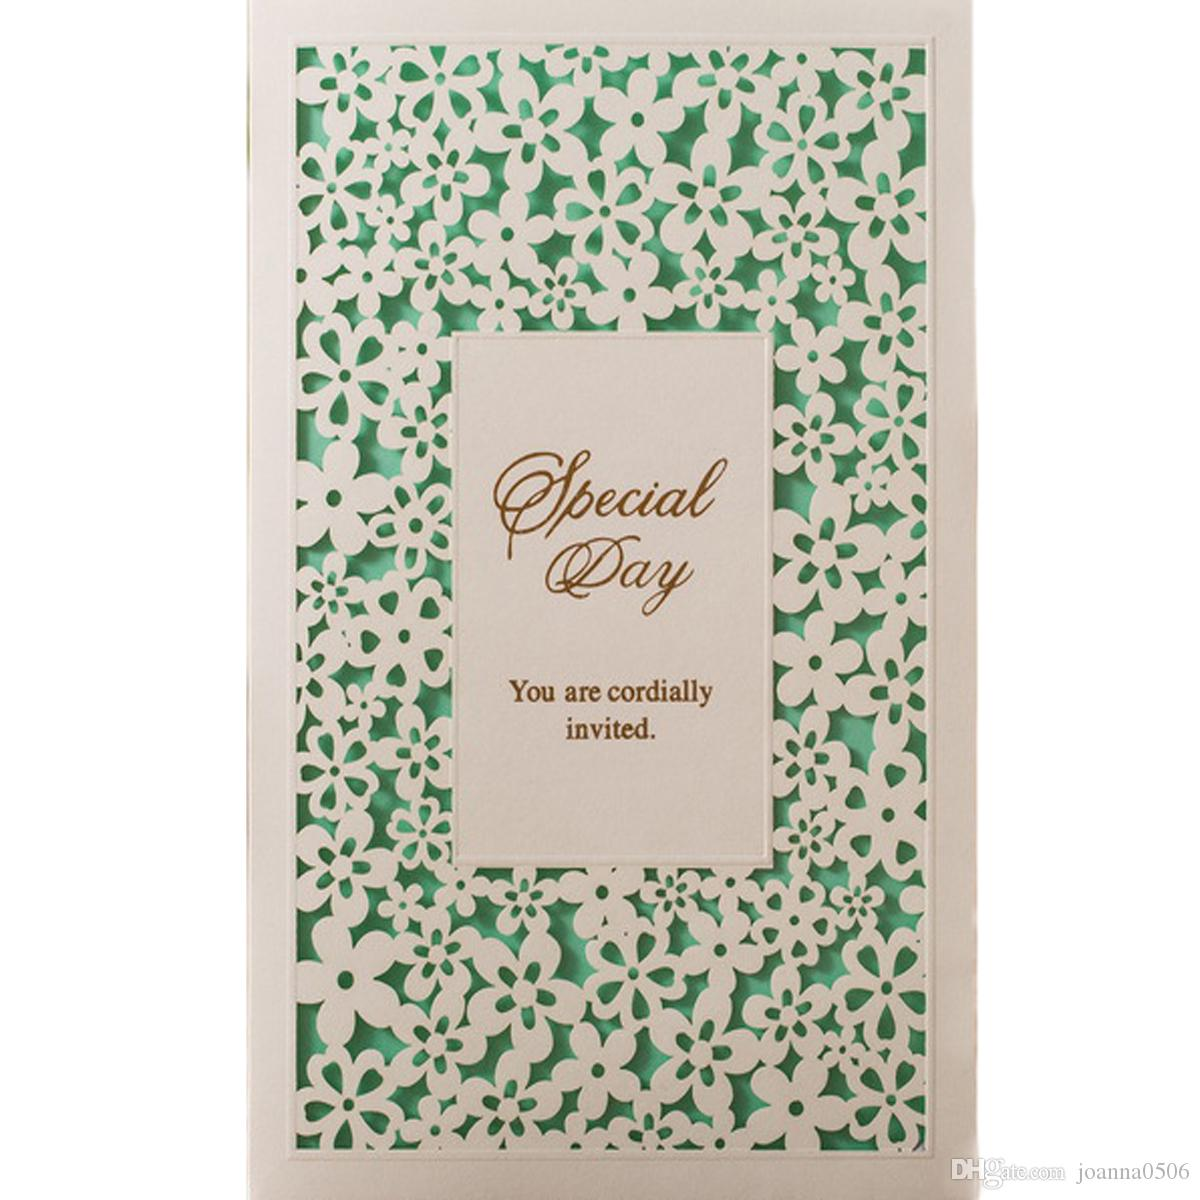 Laser cut wedding invitation cards with hollow for marriage bridal shower birthday party invitations sets with envelopes wedding invitation companies wedding invitation designer from joanna0506 4222 dhgate stopboris Choice Image